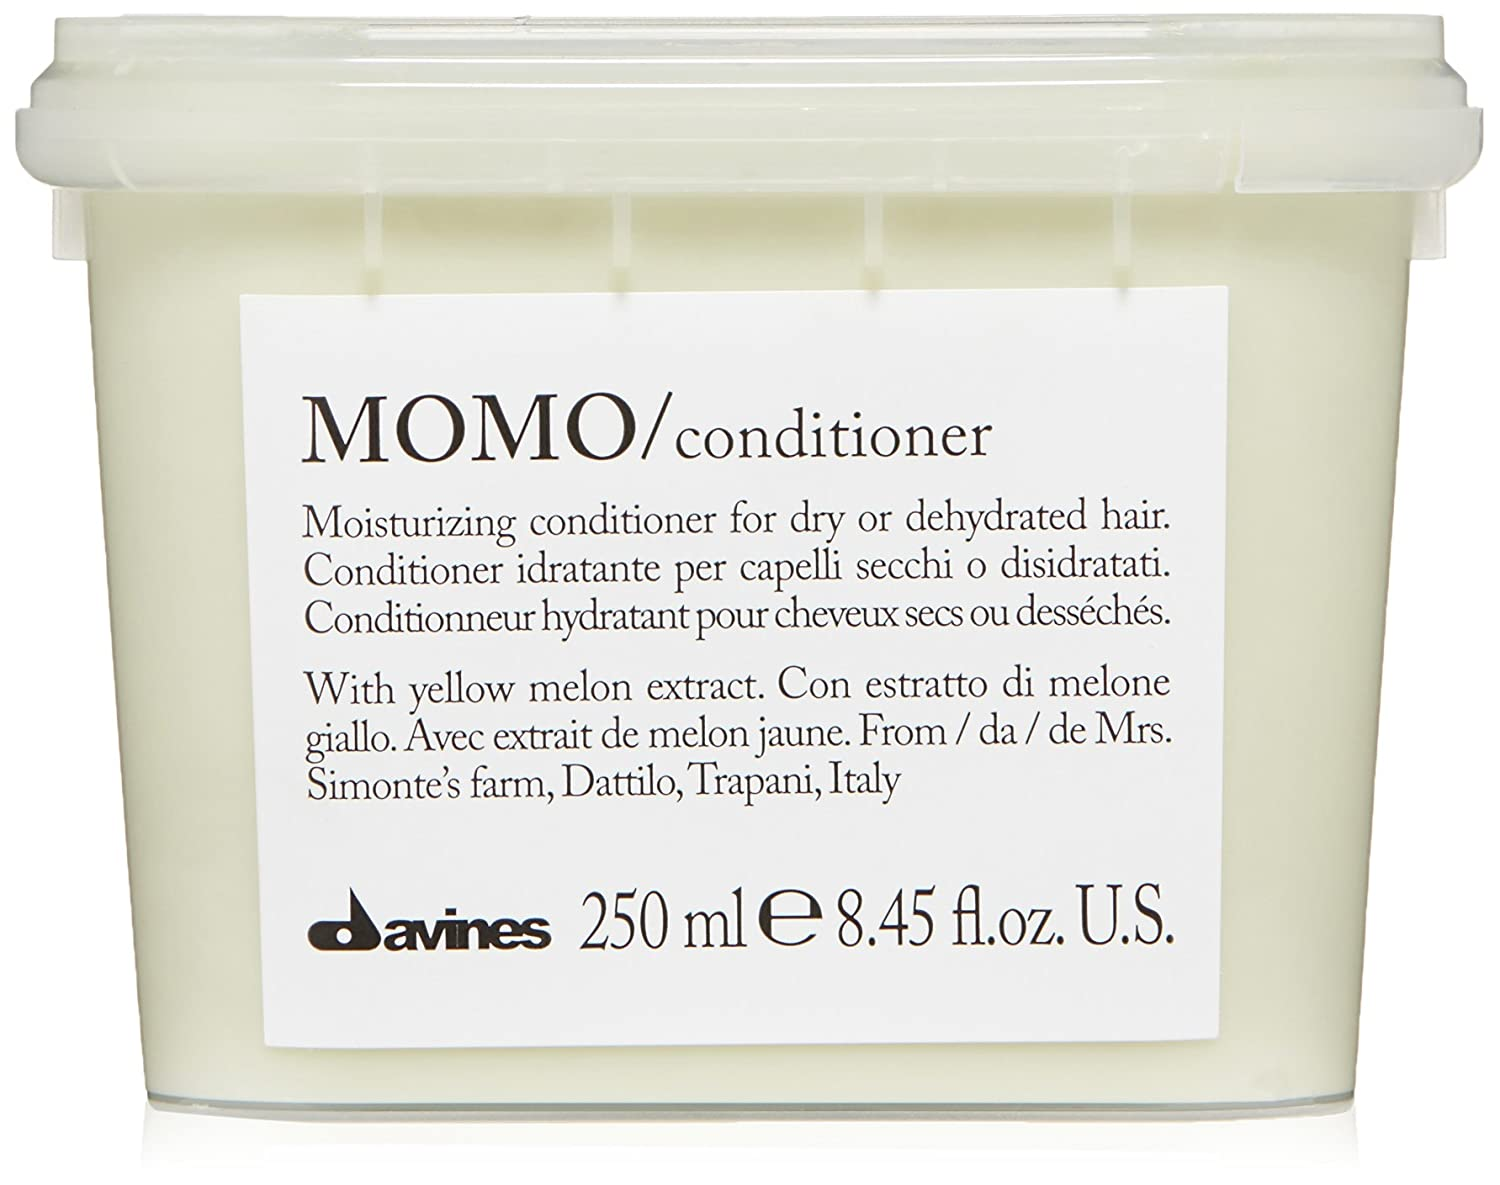 Davines MOMO conditioner 250 ml HealthCentre 8004608242147